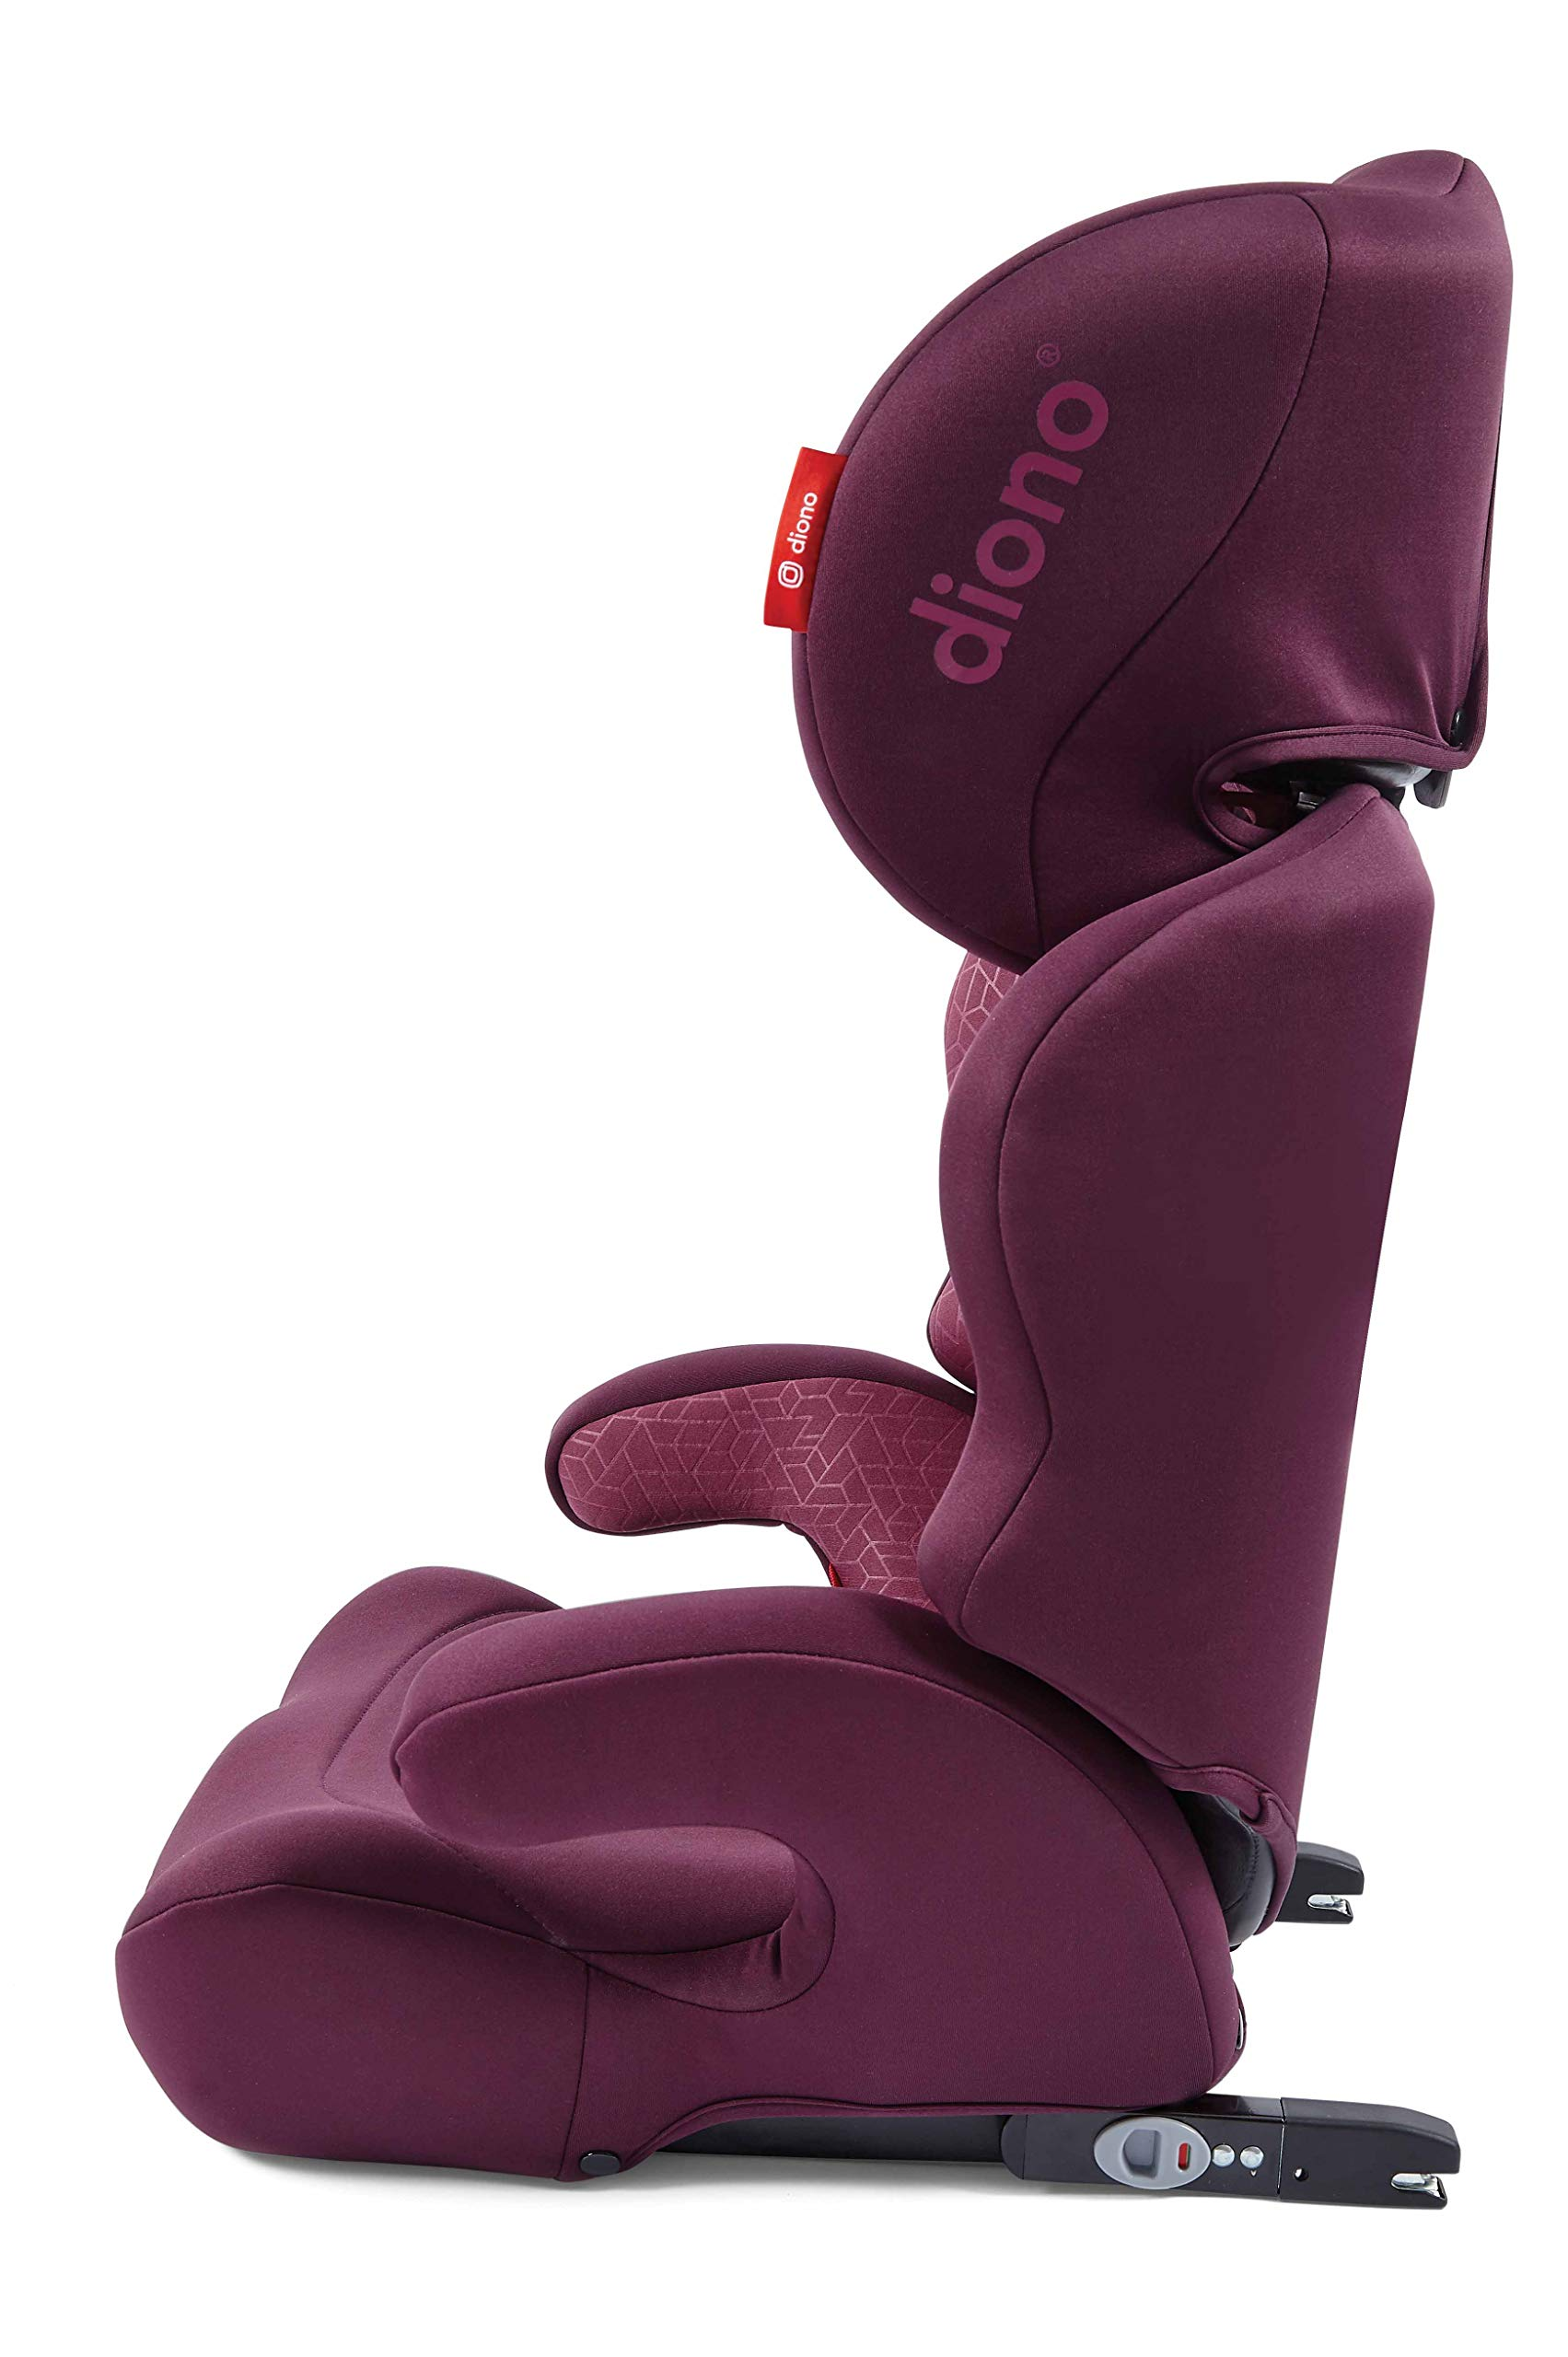 Diono Everett NXT Fix Highback Booster Seat - 7 Position Adjustable Headrest, Group 2/3 (15 - 36 kg and Up to 160 cm In Height), Approx. 4-12 Years, Plum Diono Designed to grow: group 2/3 car seat is suitable from 18kg - 50kg, approx. 4 to 12 years old. The 7-position adjustable headrest can be altered using the handle on the back of the seat Superior safety: cushioned side impact protection has been engineered and tested to the highest standards. The ergonomic design includes extra padding to provide comfort and security as a child grows Universal connectivity: parents can install the seat using the vehicle seatbelt or use the integrated rigid latch connectors that anchor the seat to the car allowing the child to buckle themselves in 11